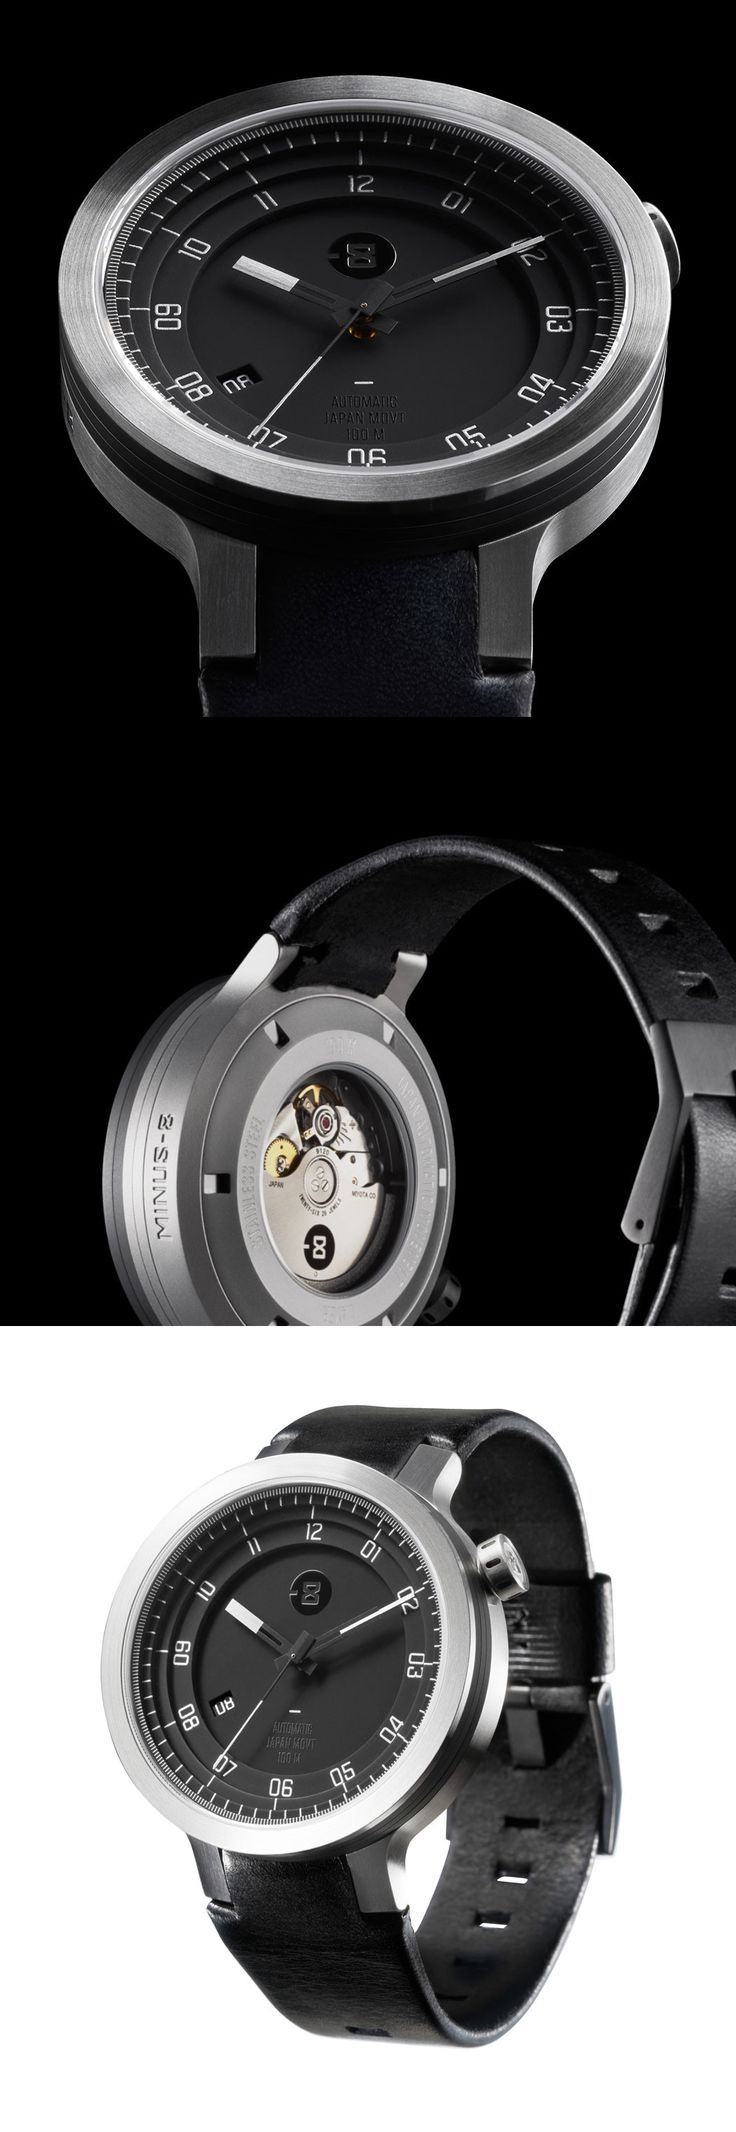 Minus 8 | Layer  leather mens-stainless steel watch - silver-black - mens gold and black watches, online watch store, mens watches best *sponsored https://www.pinterest.com/watches_watch/ https://www.pinterest.com/explore/watches/ https://www.pinterest.com/watches_watch/hublot-watches/ https://www.amazon.com/Watches/b?ie=UTF8&node=6358539011